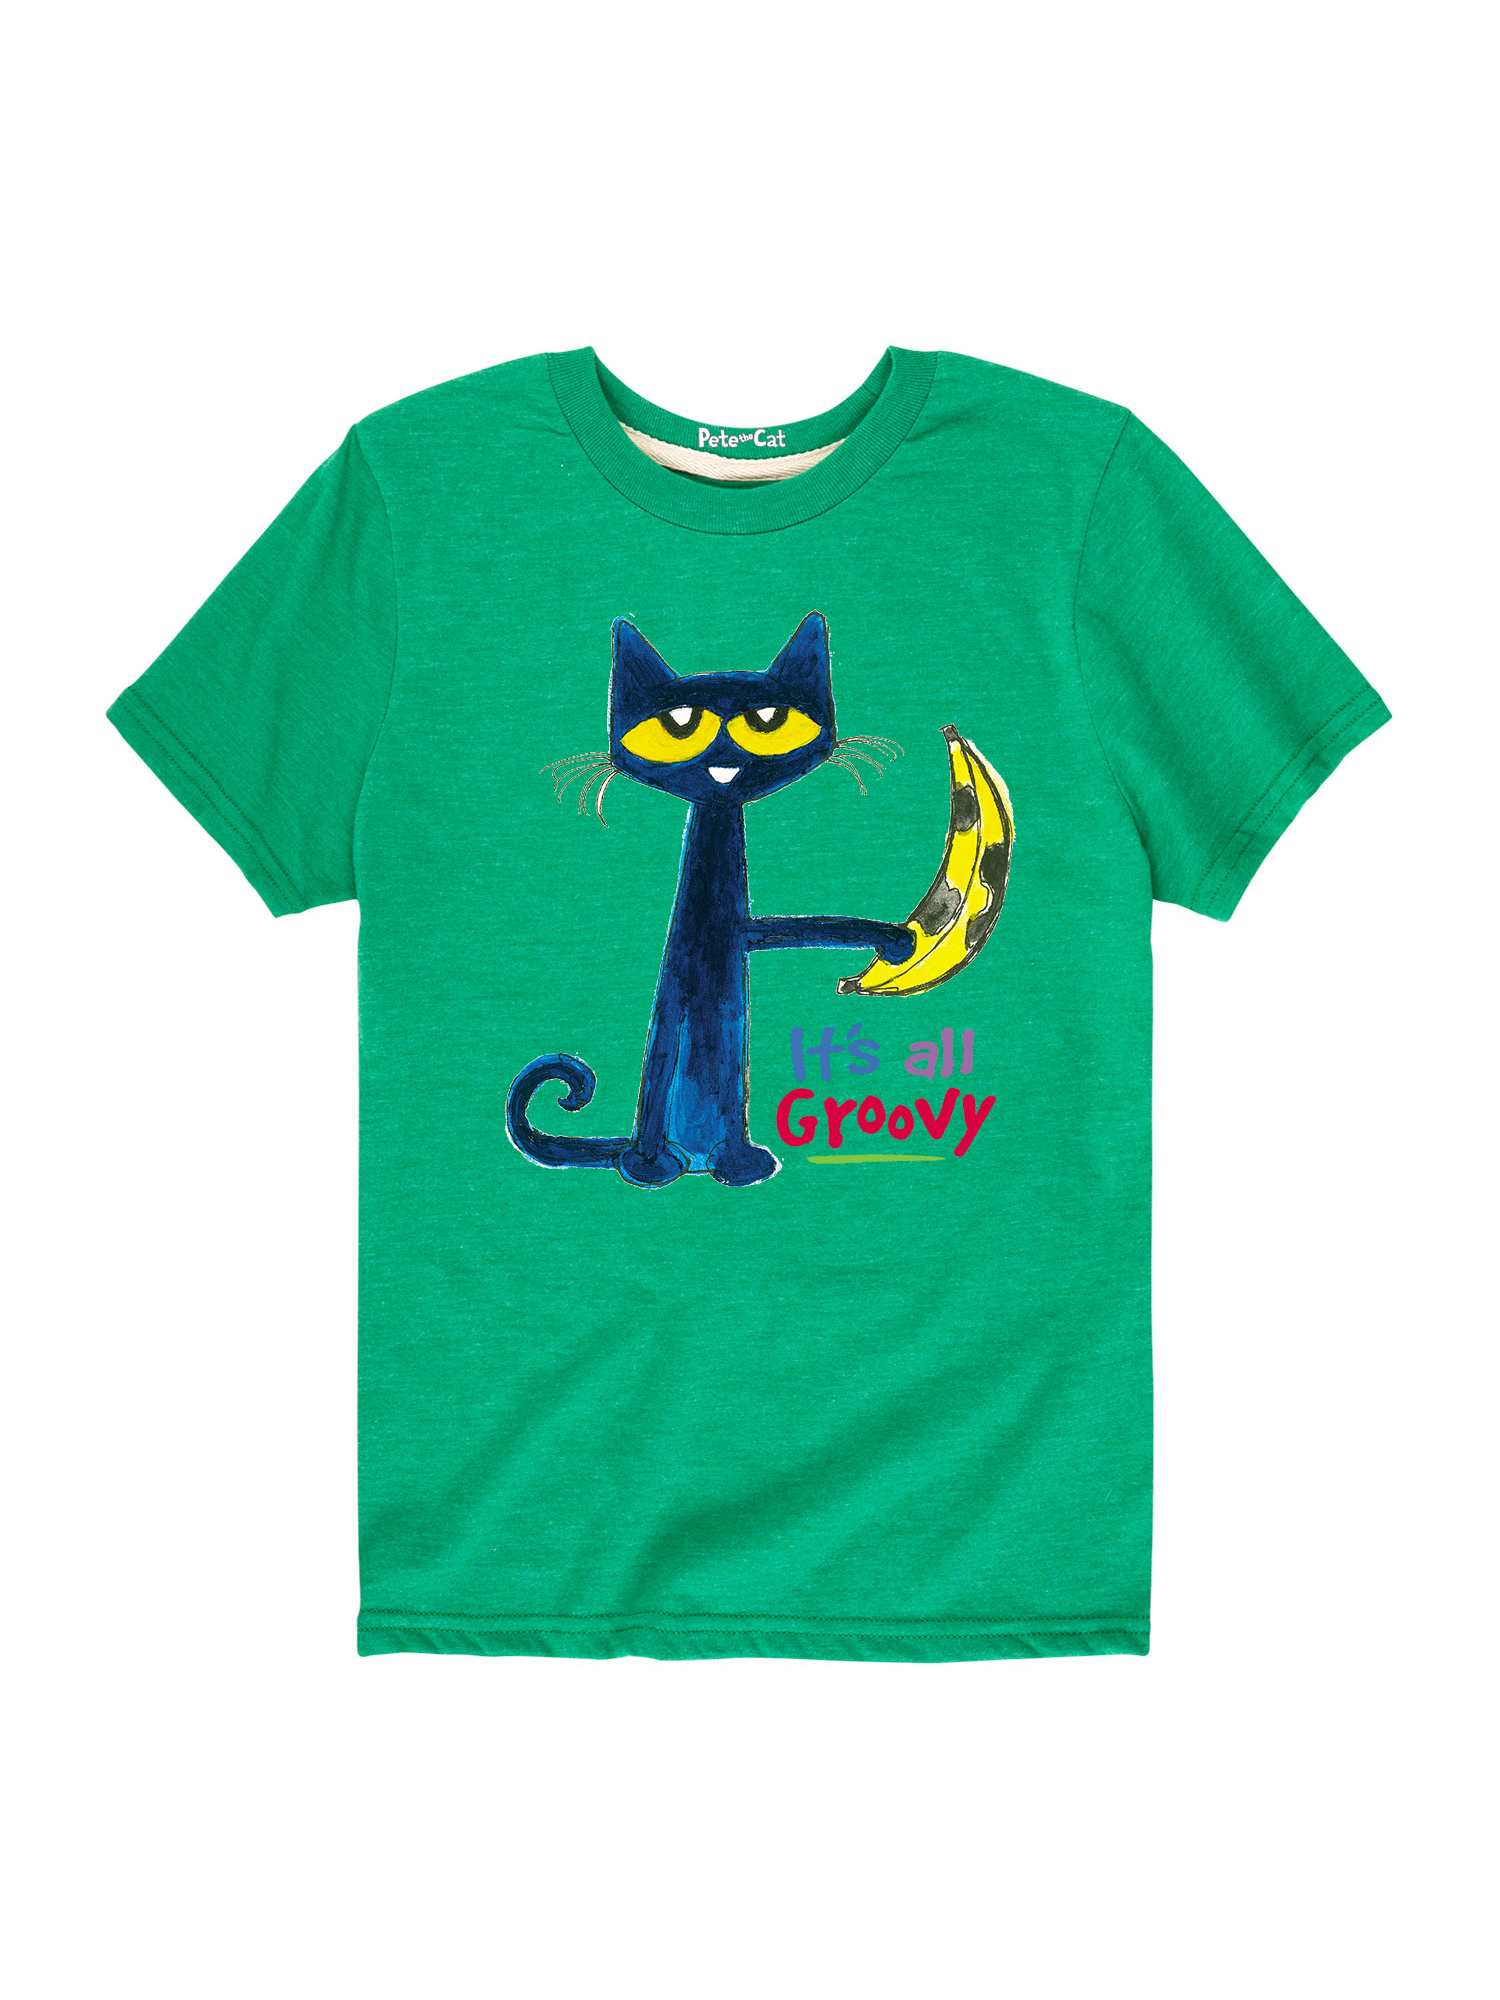 Pete The Cat It's All Groovy  - Toddler Short Sleeve Tee